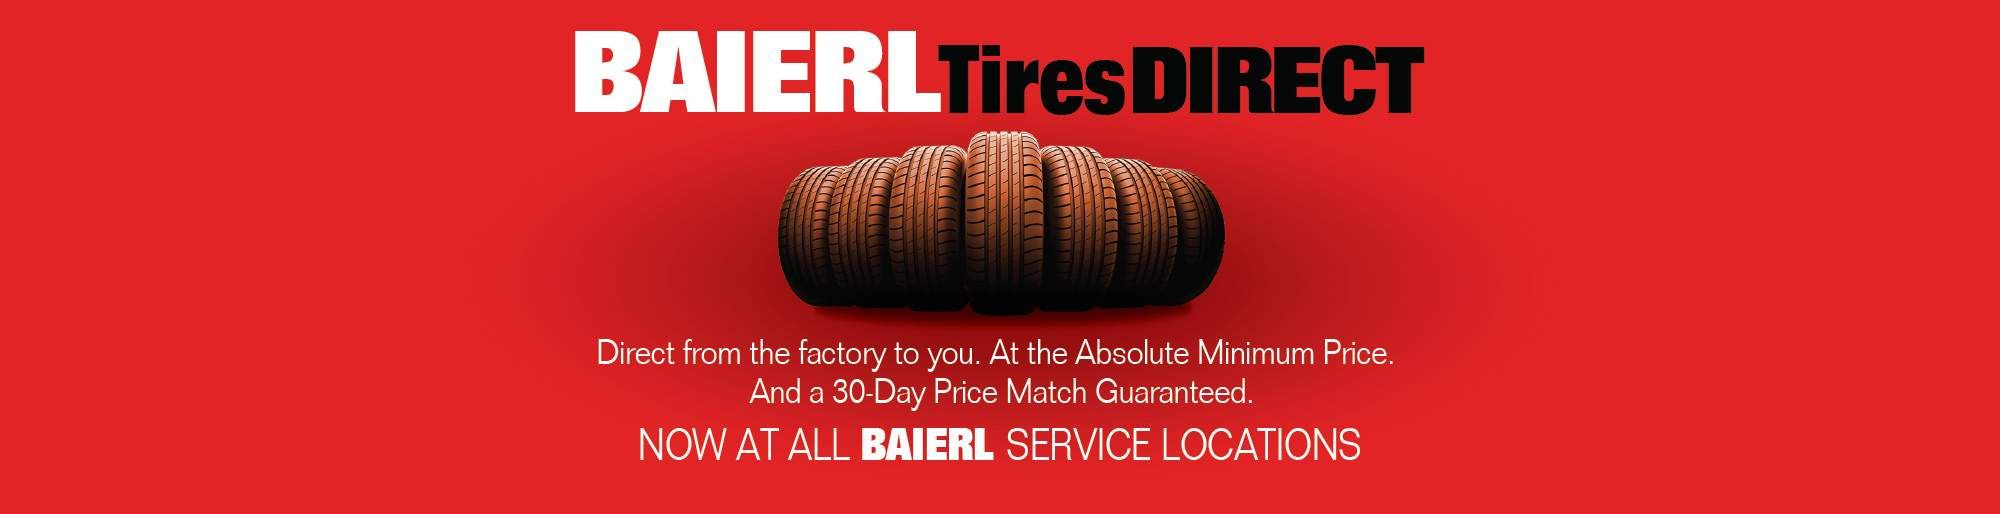 Baierl Acura New Acura Dealership In Wexford PA - Acura dealers in pa